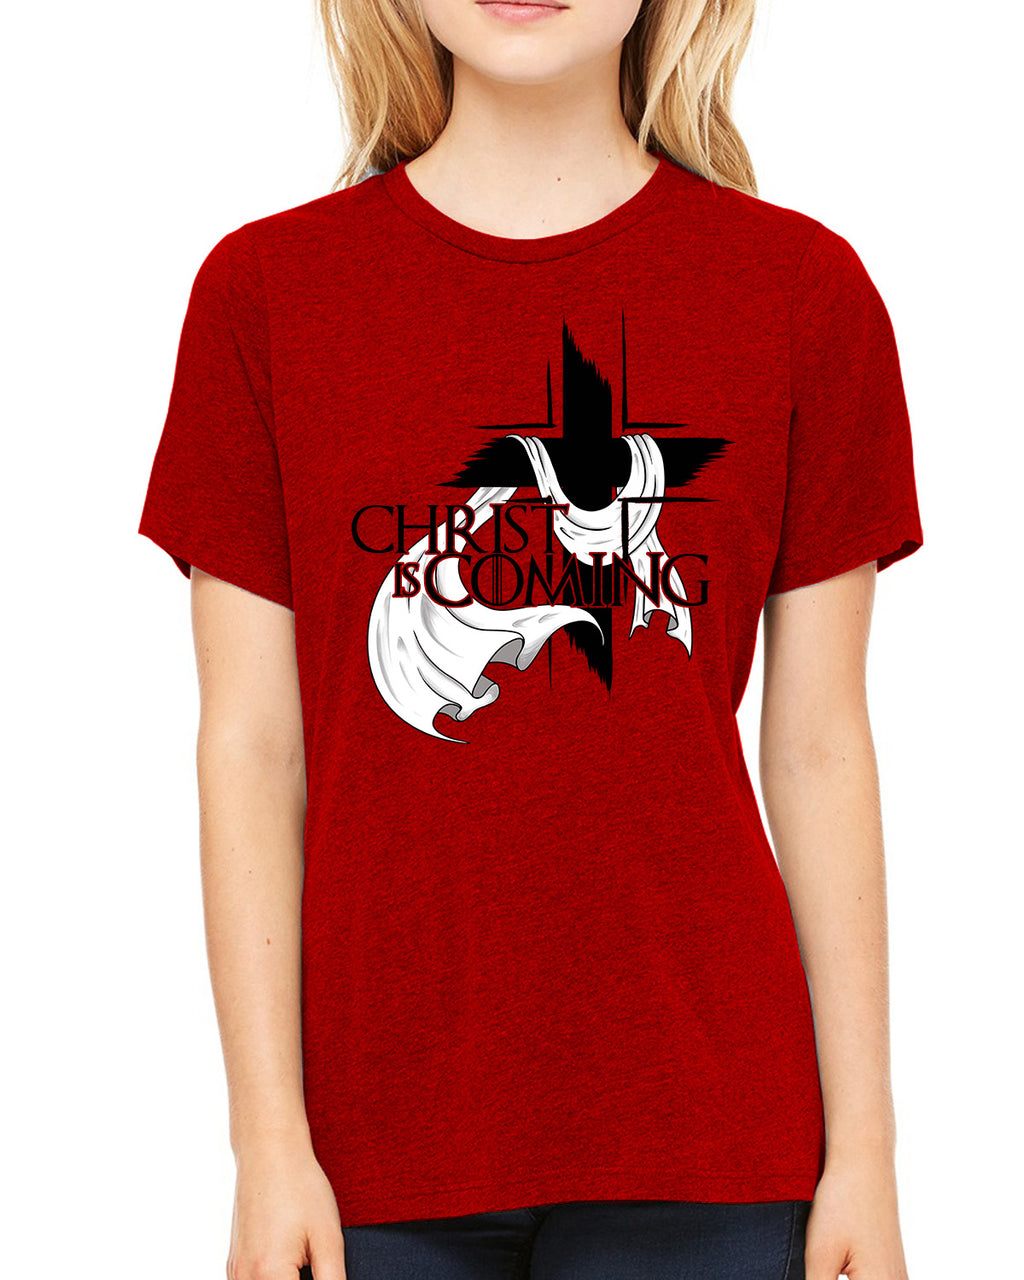 CIC (Christ Is Coming) Women's T-shirt